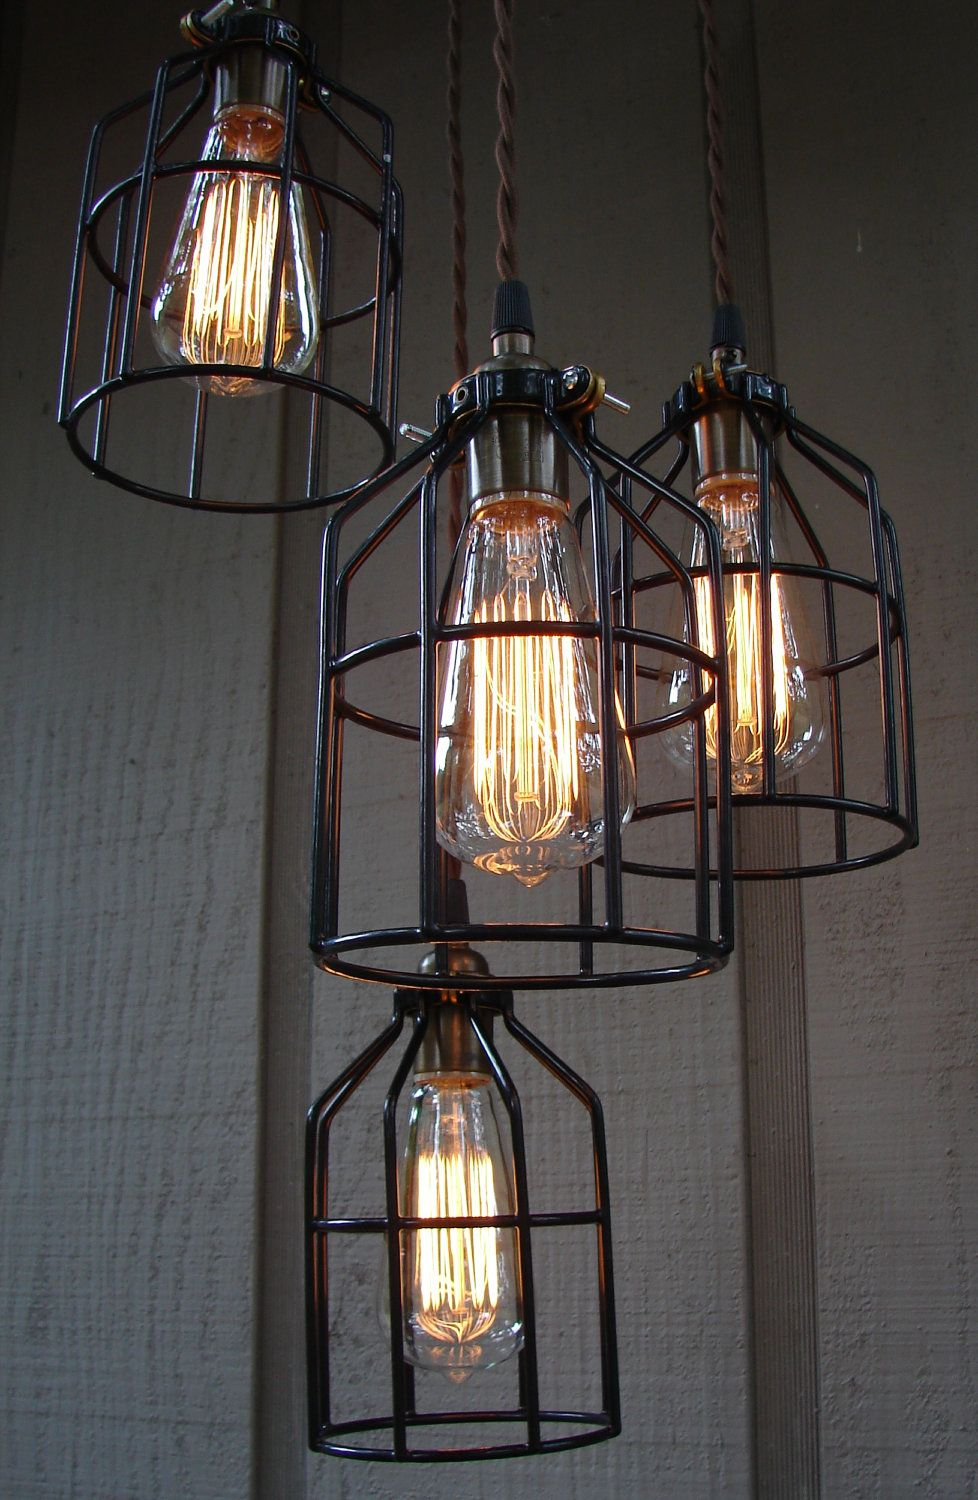 Upcycled Industrial Edison Bulb Cage Hanging Pendant Light - Kitchen light fixtures edison bulb